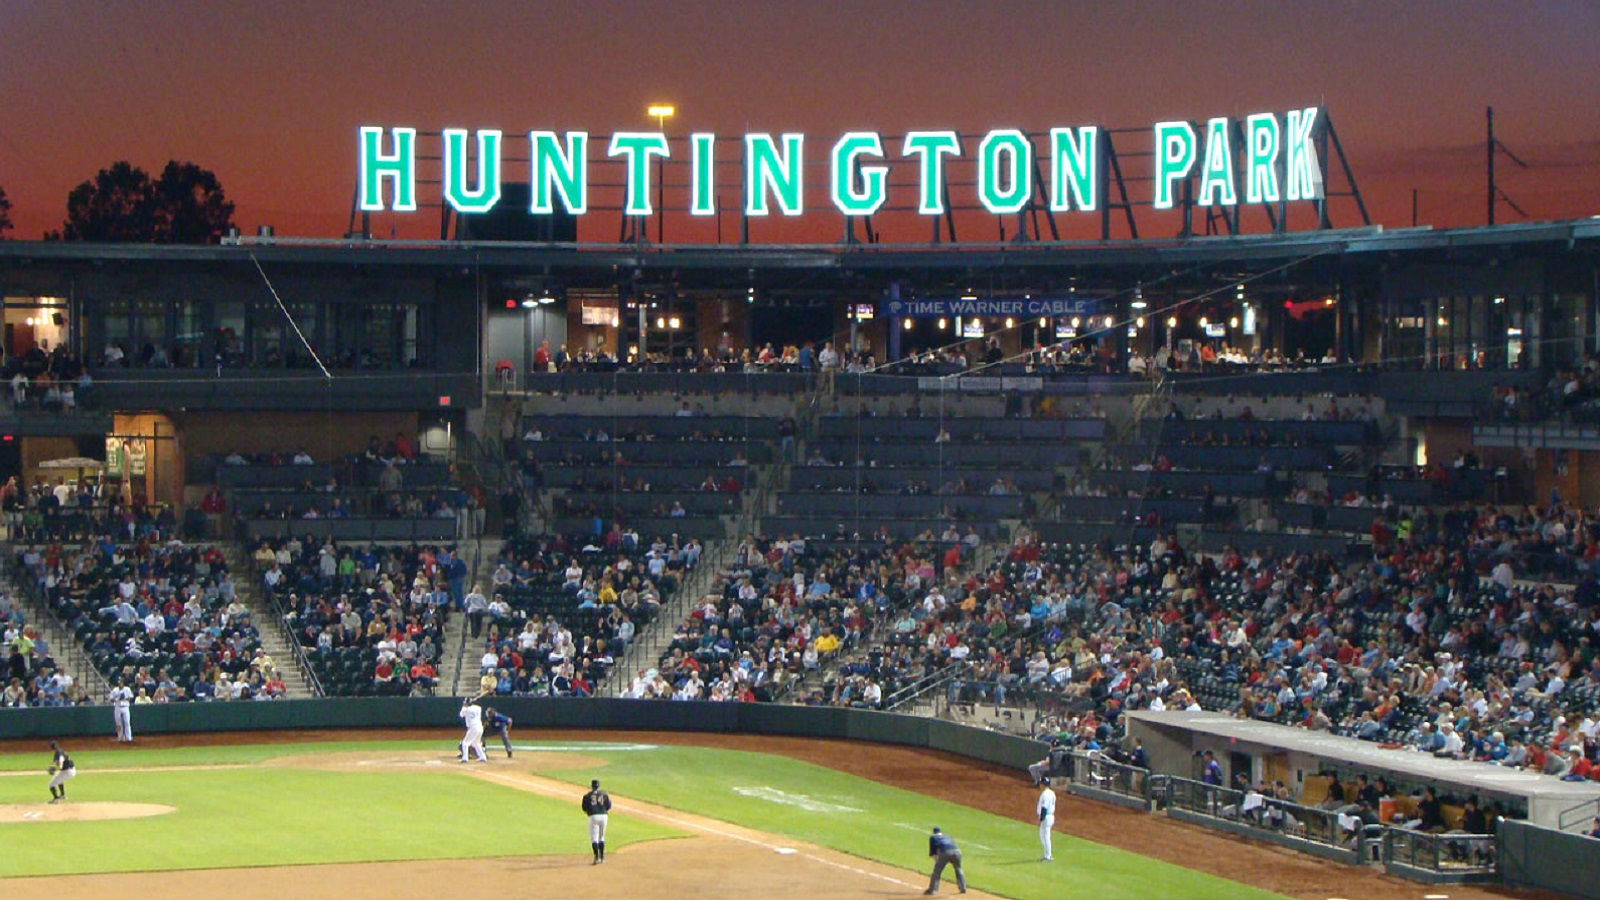 Hotels near Huntington Park